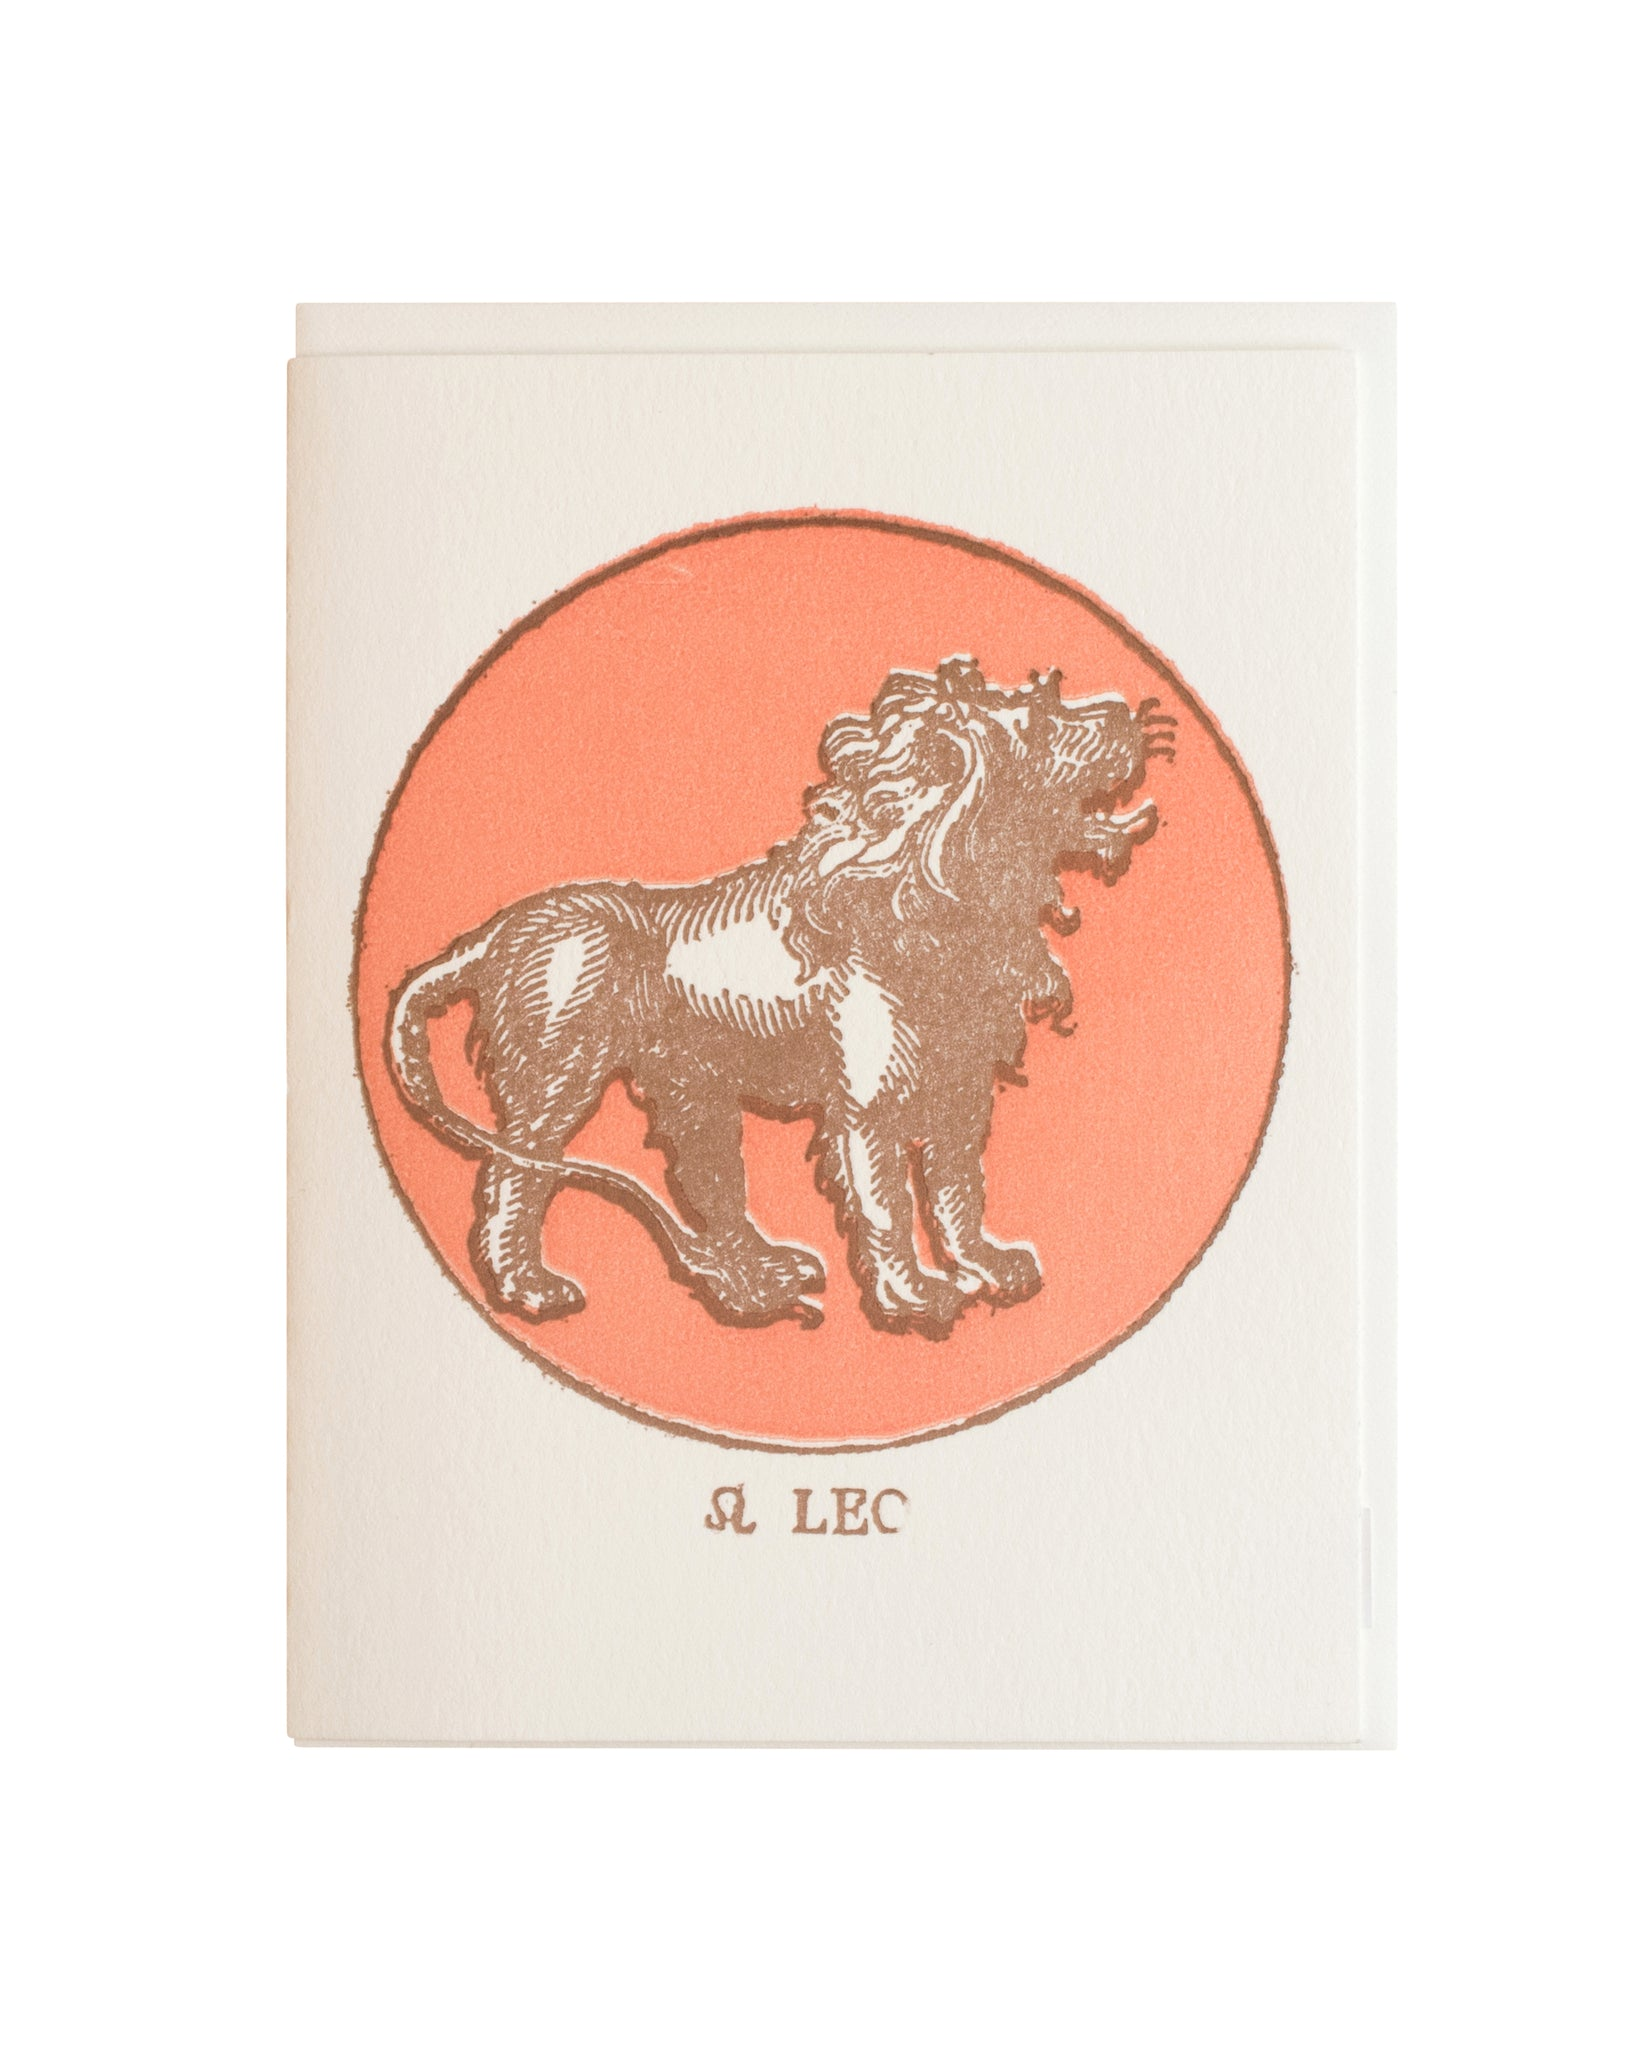 Leo (July 23 - August 22)